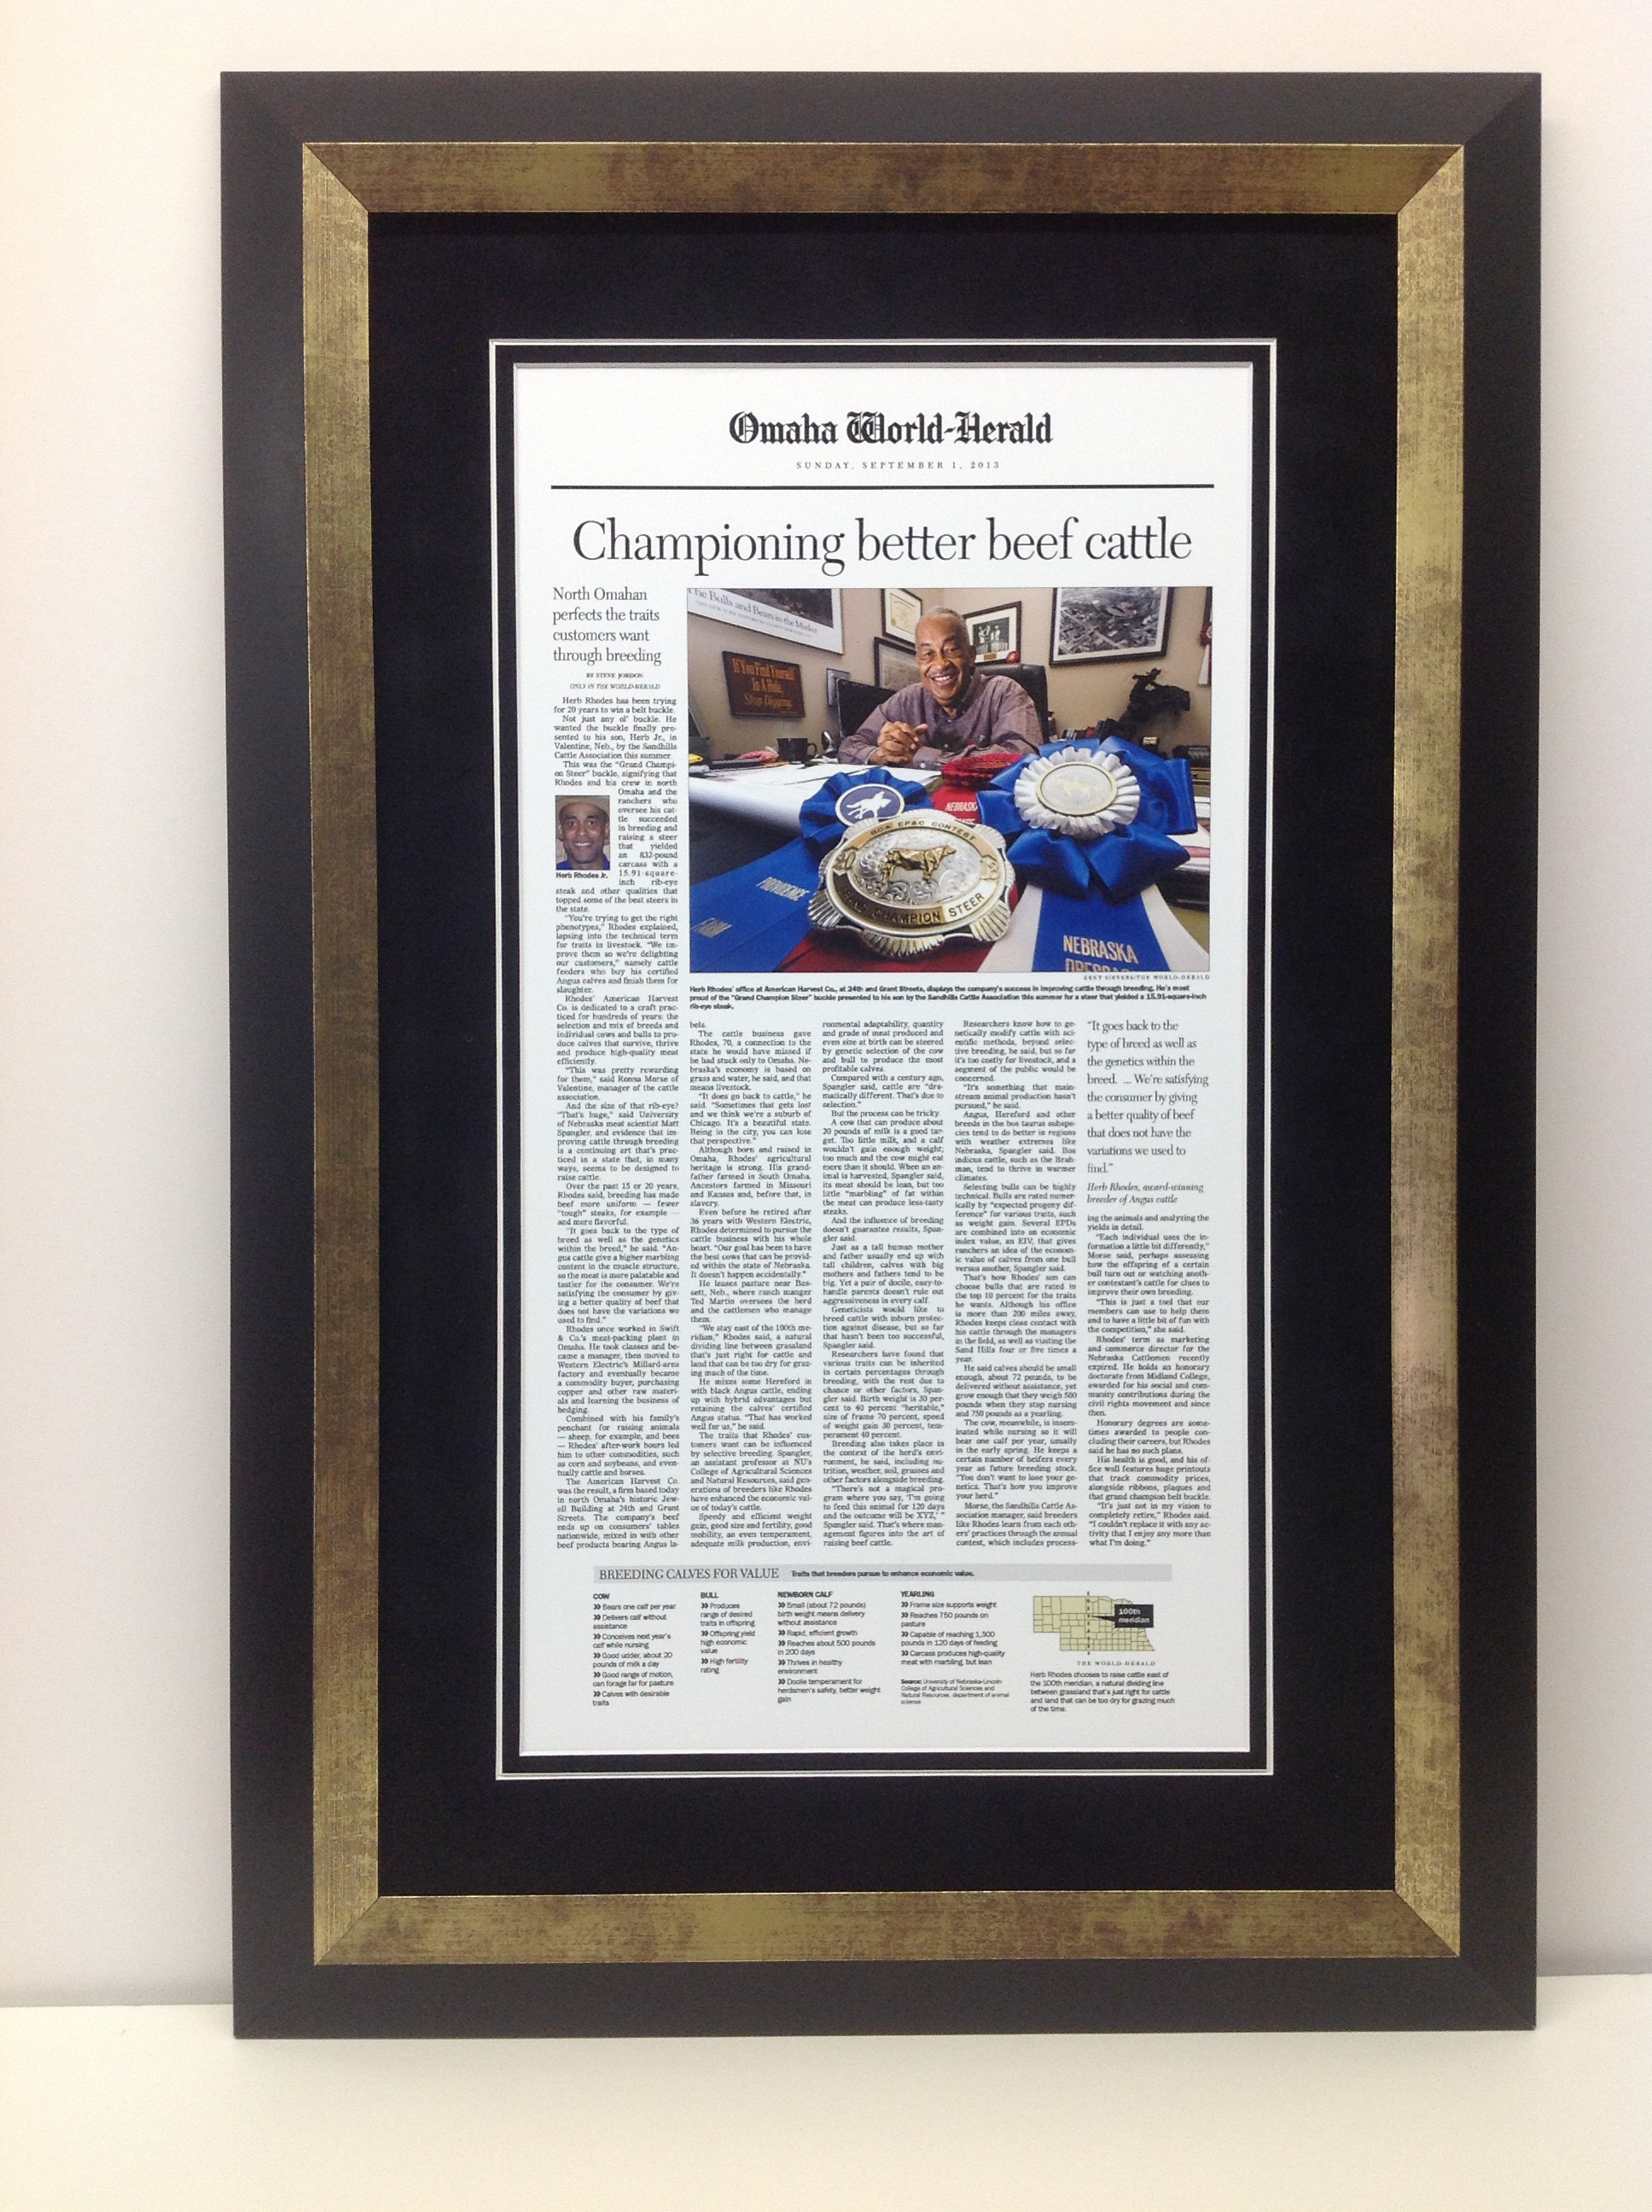 newspaper article from the omaha world herald framed with black suede mat and blackgold frame